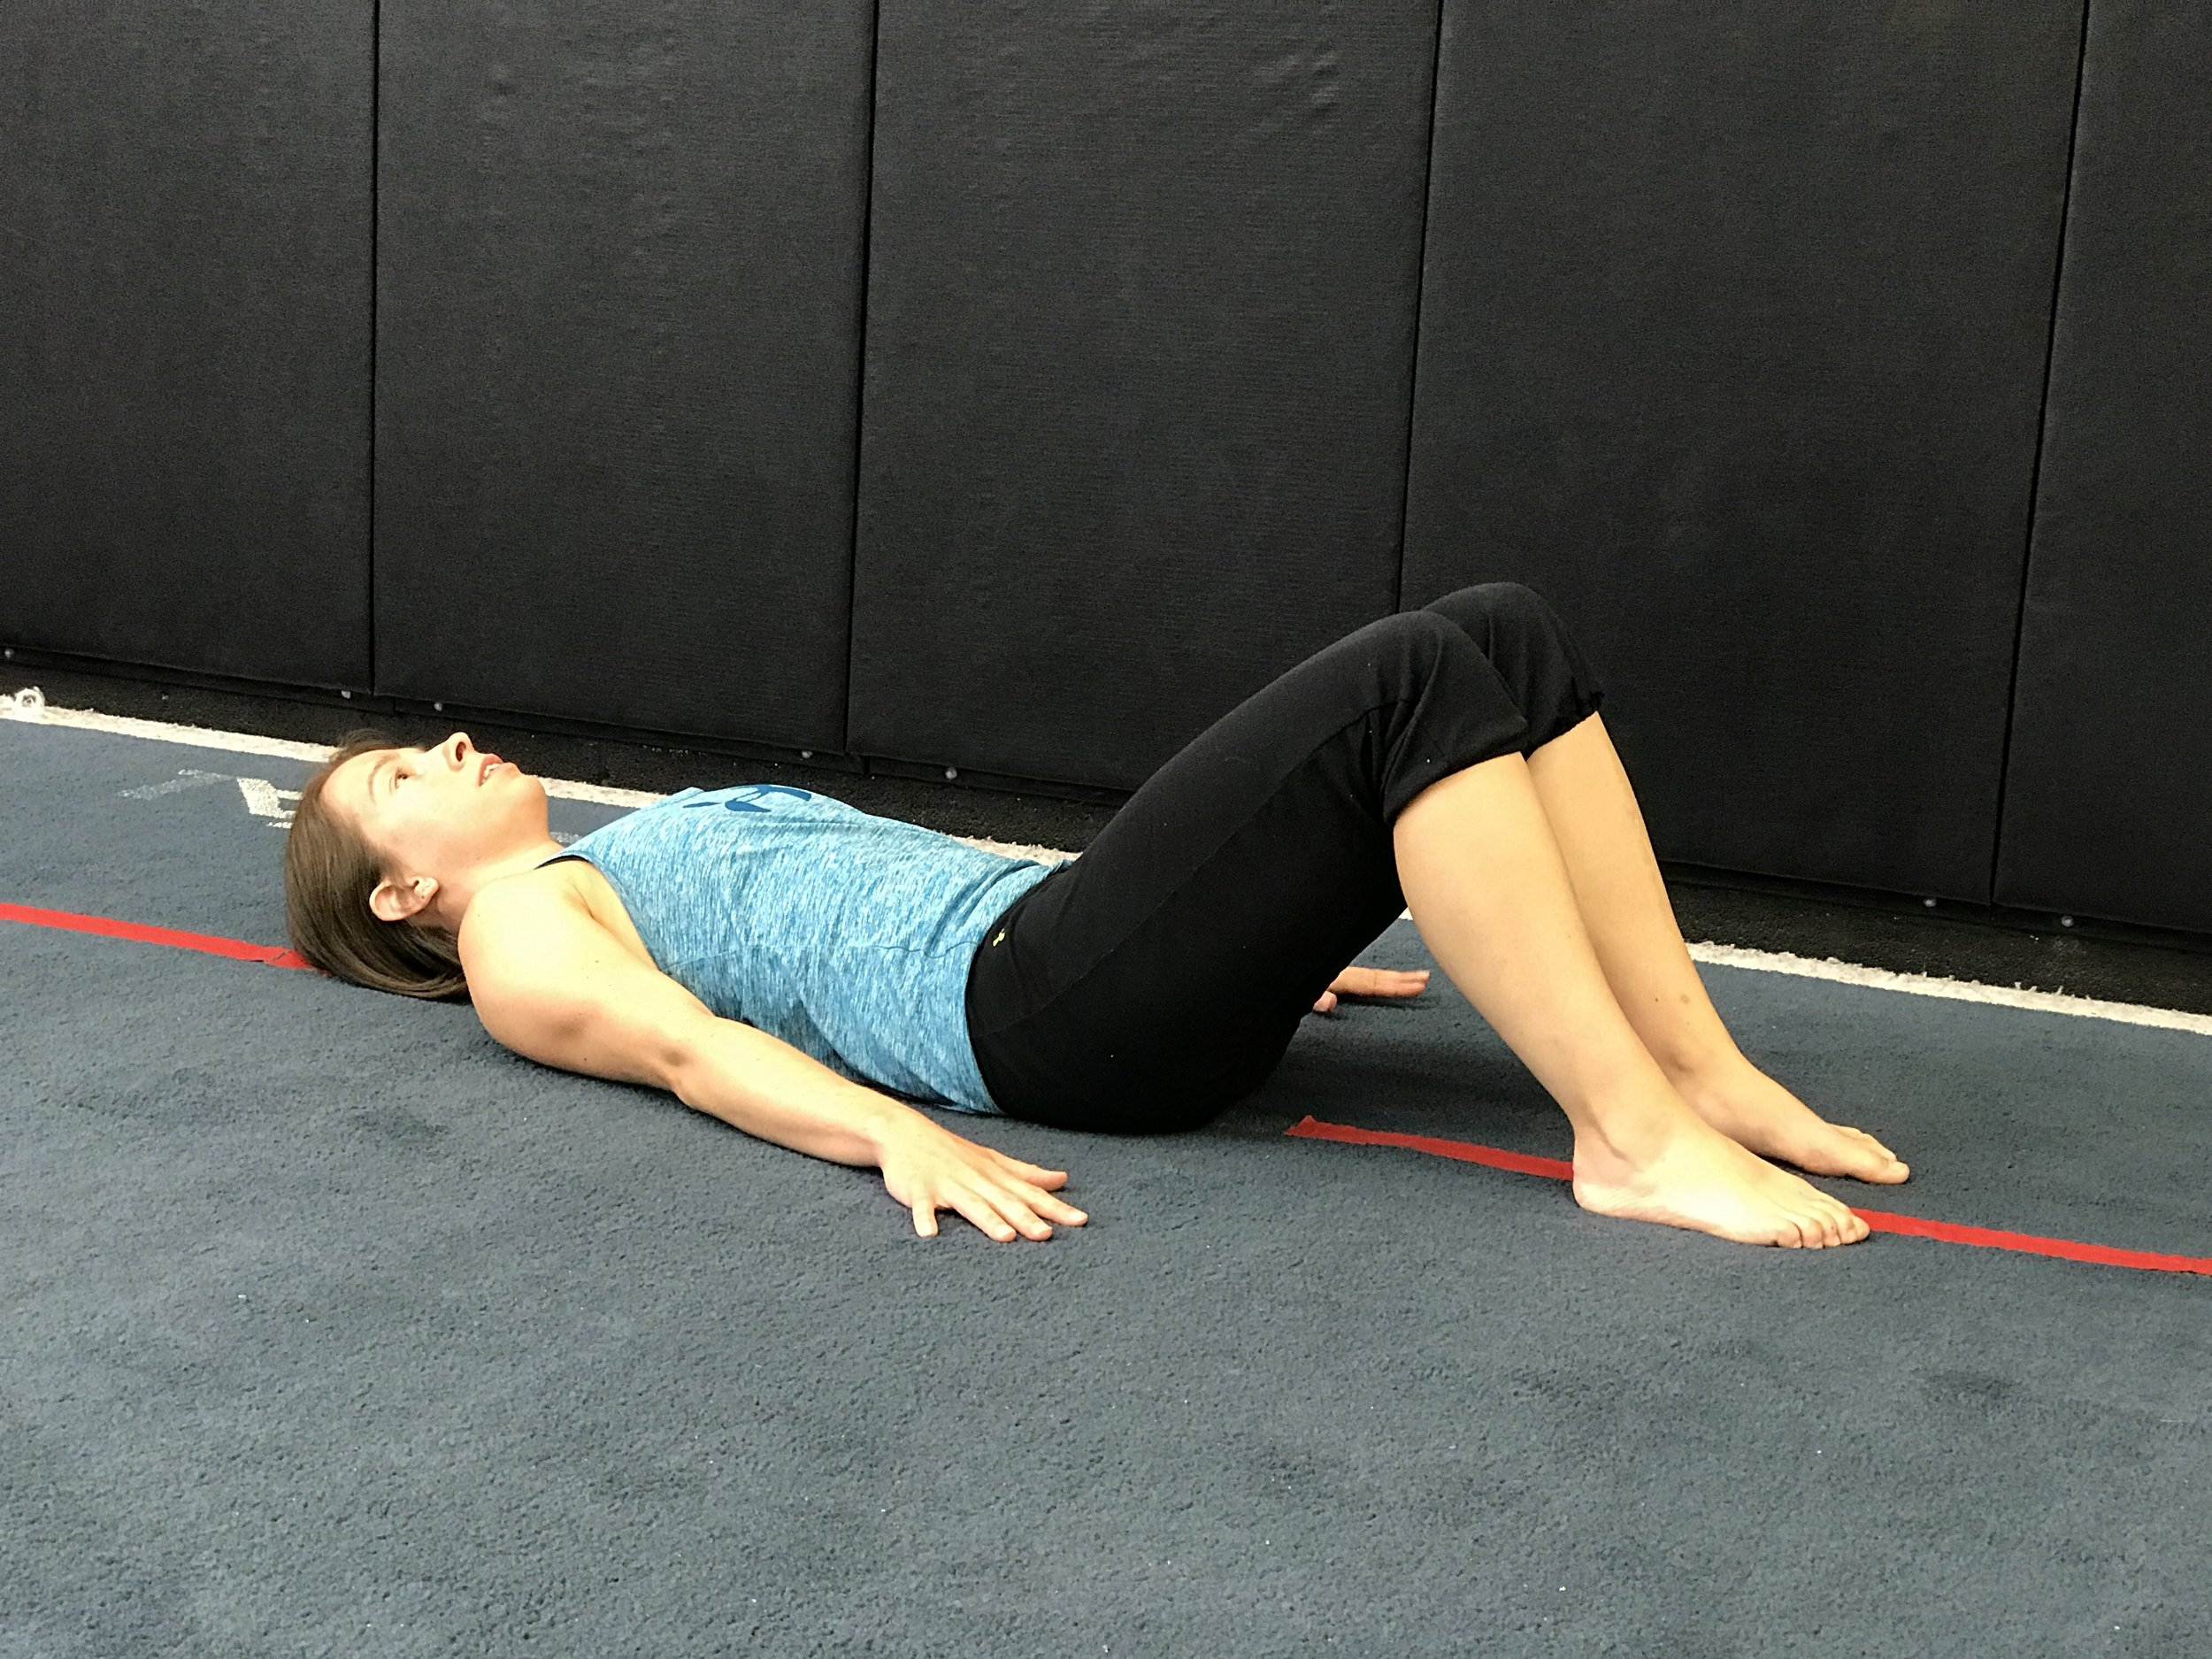 Starting position: Laying with the knees bent and feet flat.  Hands on the floor next to you for support/balance. Tighten the core (think abdominal brace/kegel).